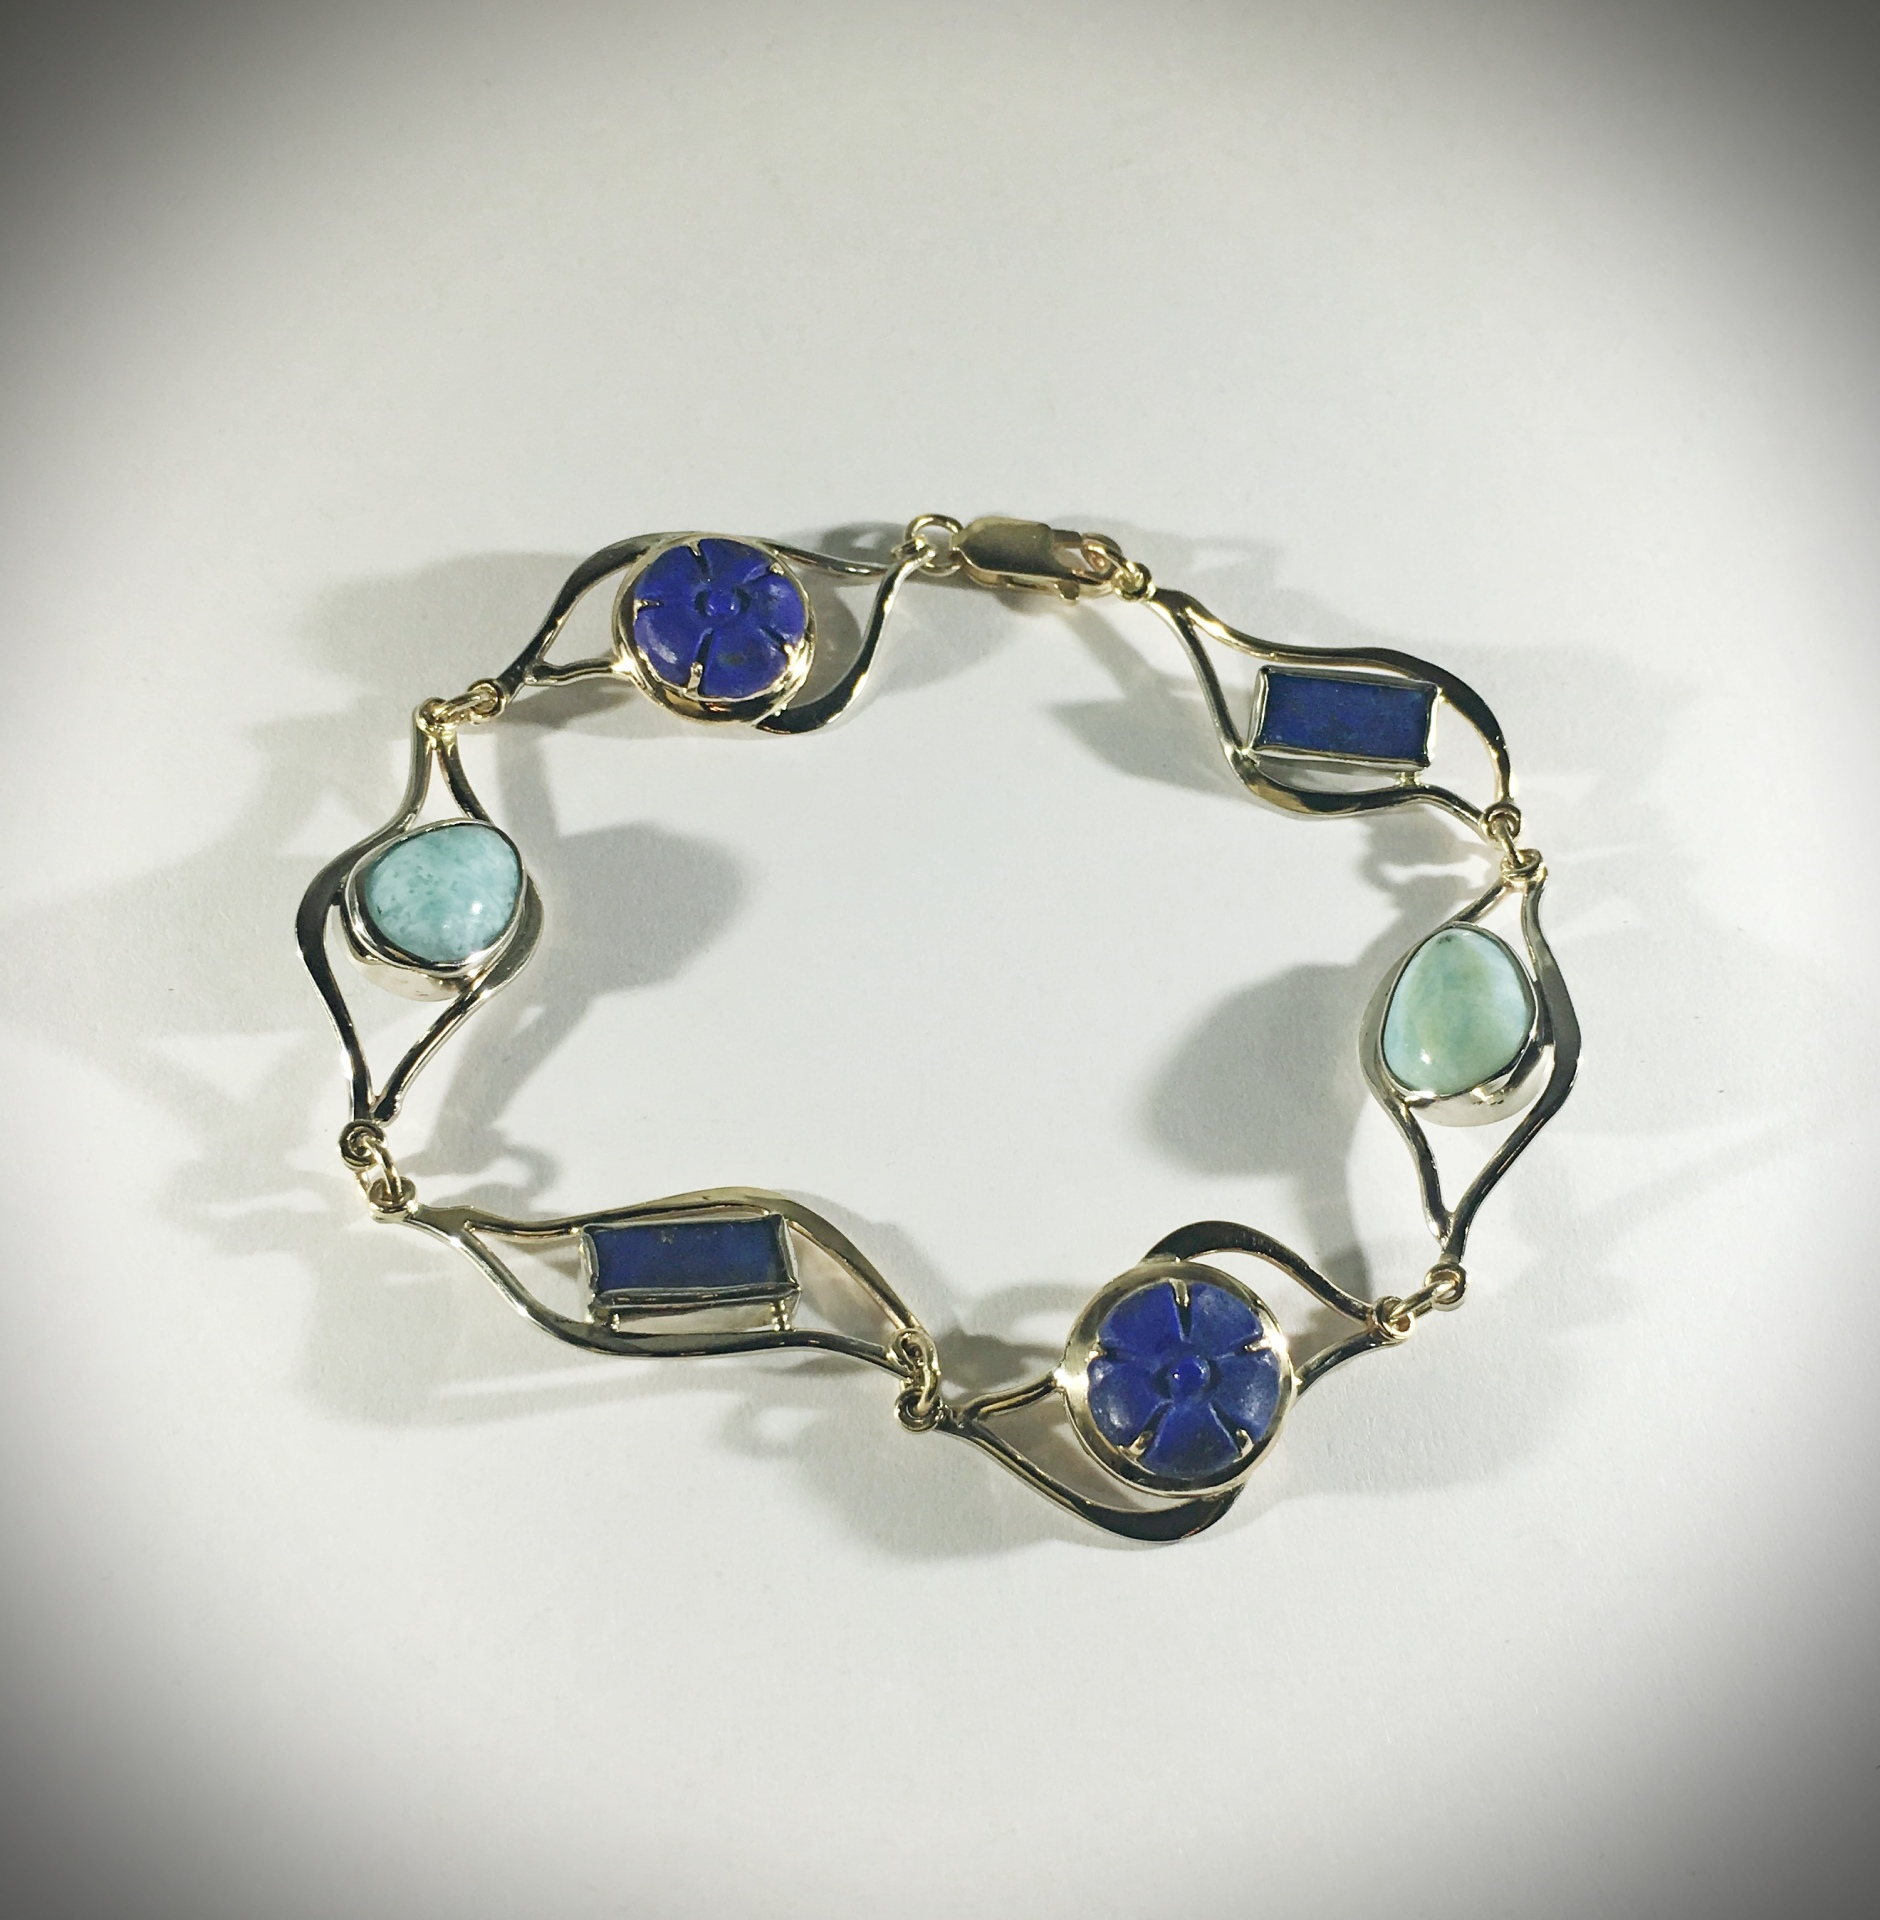 Patty Conlin - Jewelry